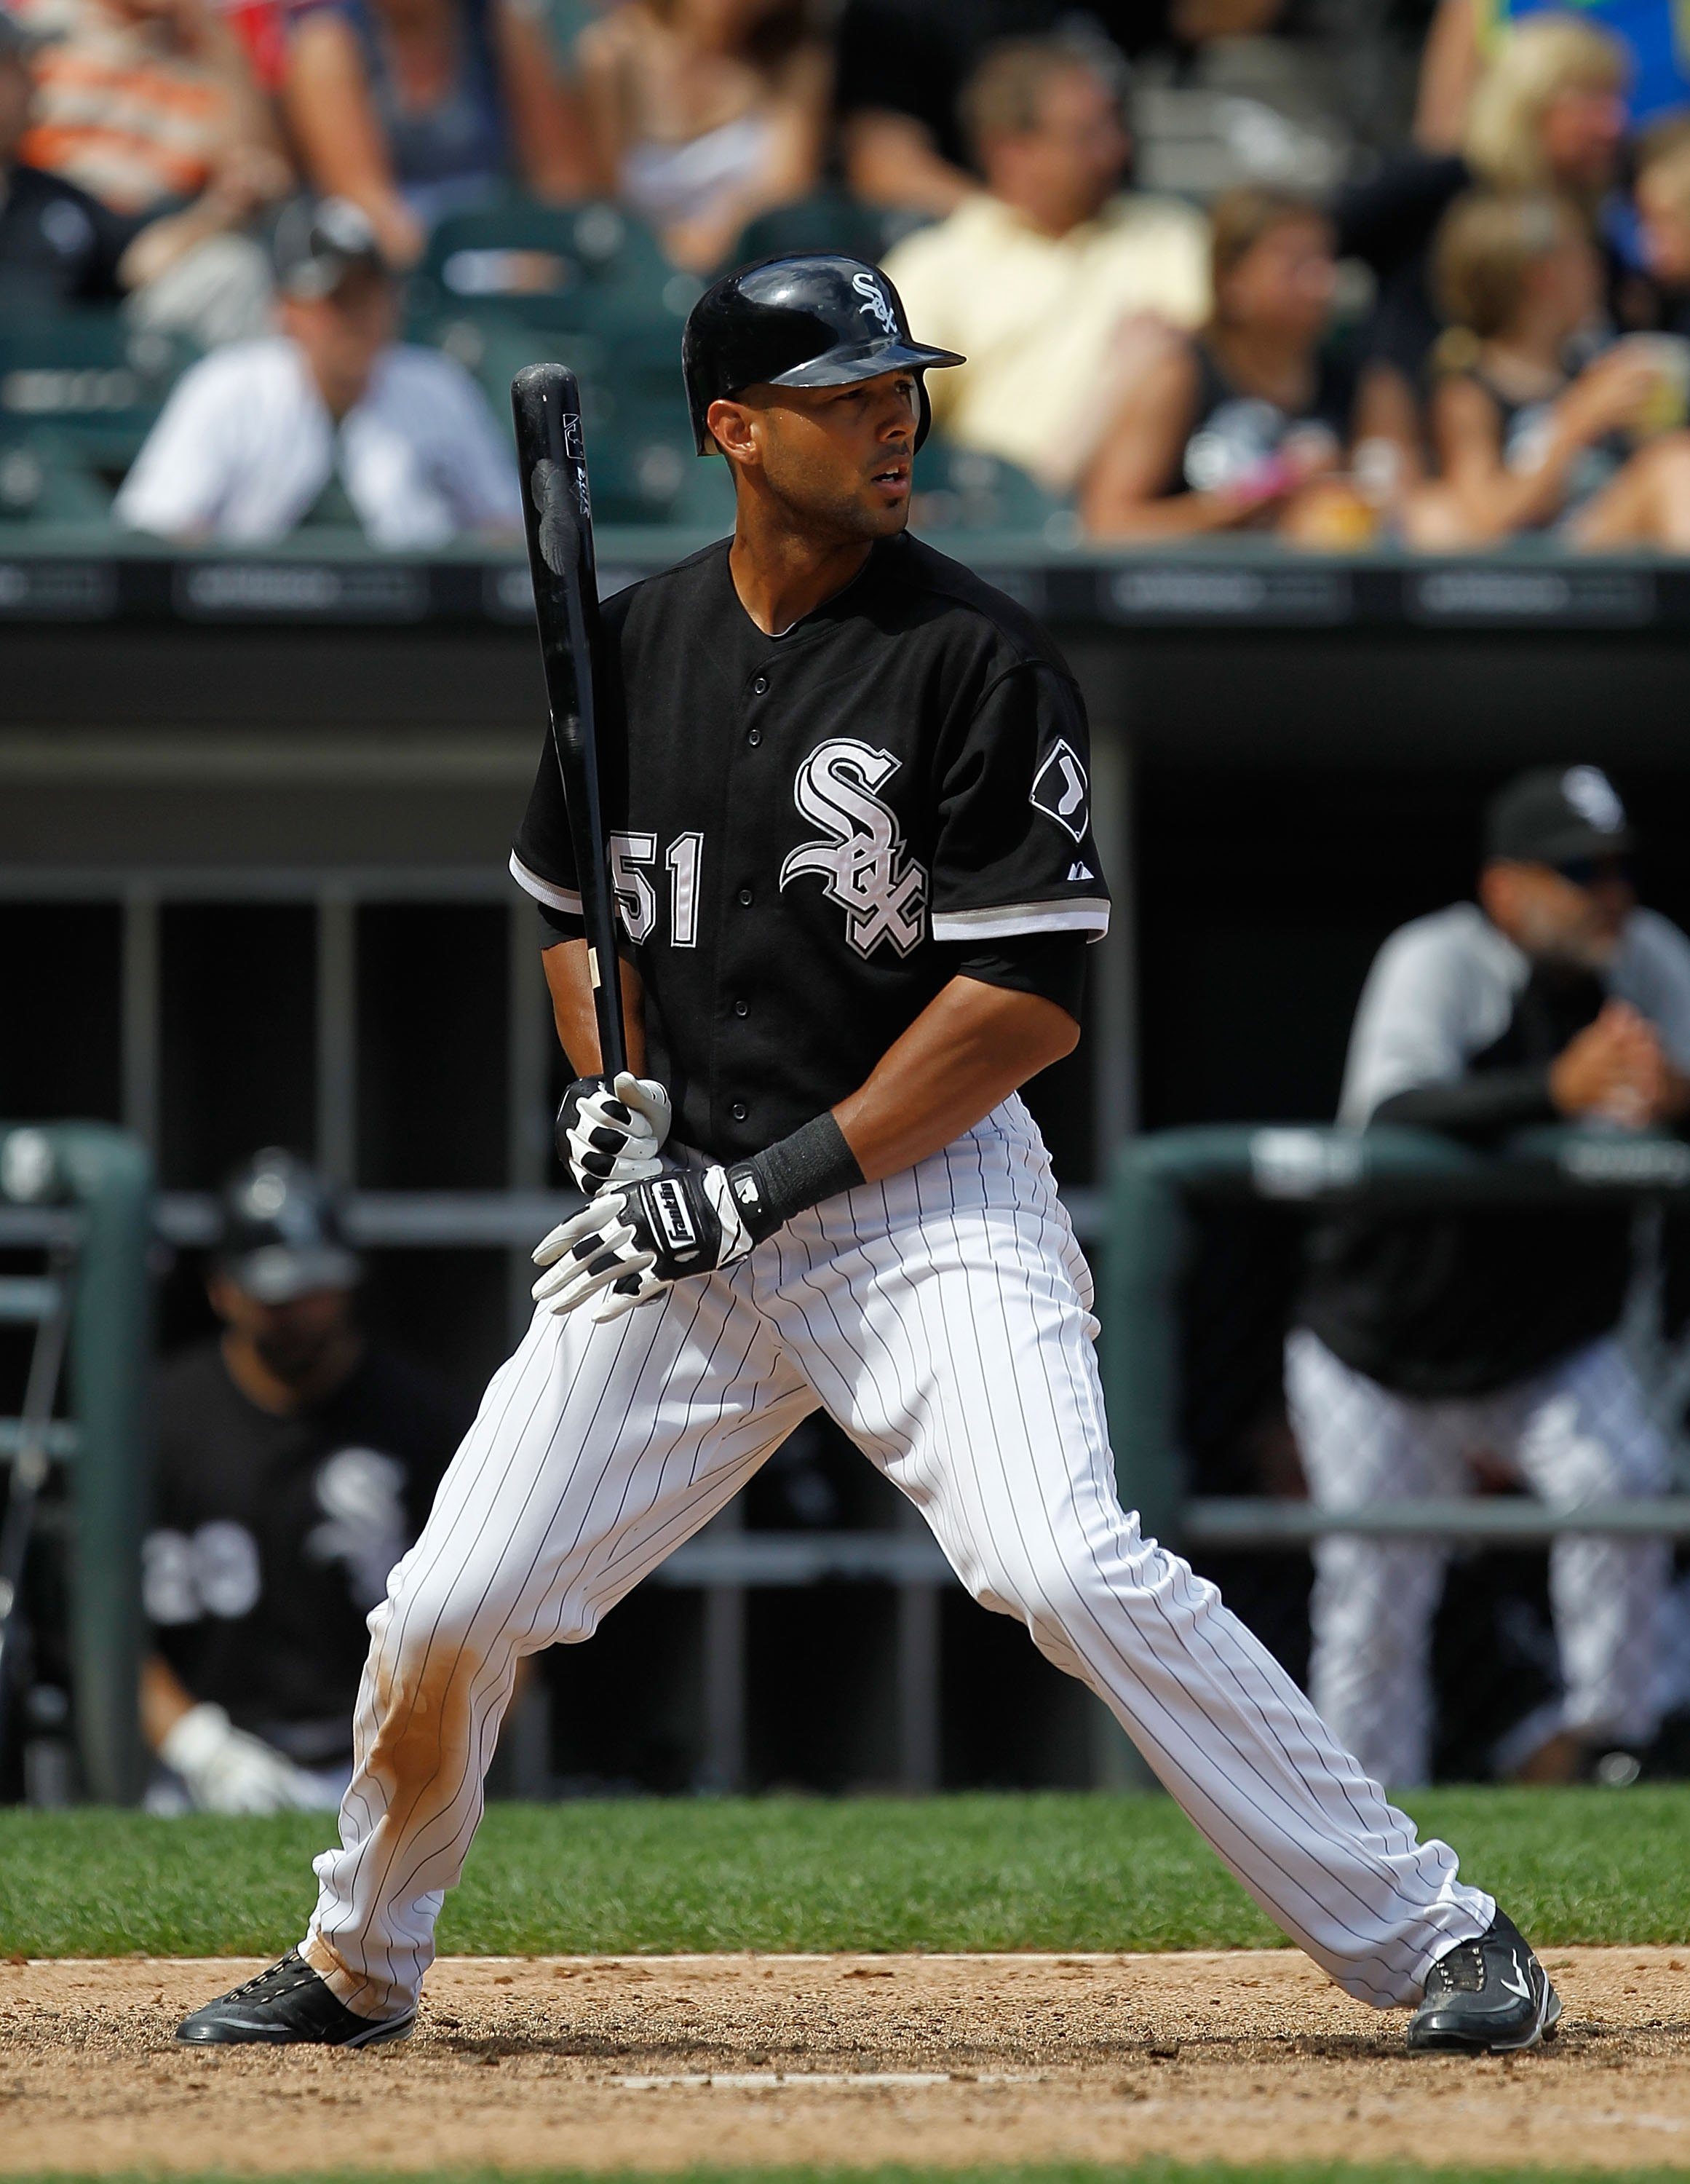 CHICAGO - JUNE 27: Alex Rios #51 of the Chicago White Sox prepares to bat against the Chicago Cubs at U.S. Cellular Field on June 27, 2010 in Chicago, Illinois. The Cubs defeated the White Sox 8-6. (Photo by Jonathan Daniel/Getty Images)